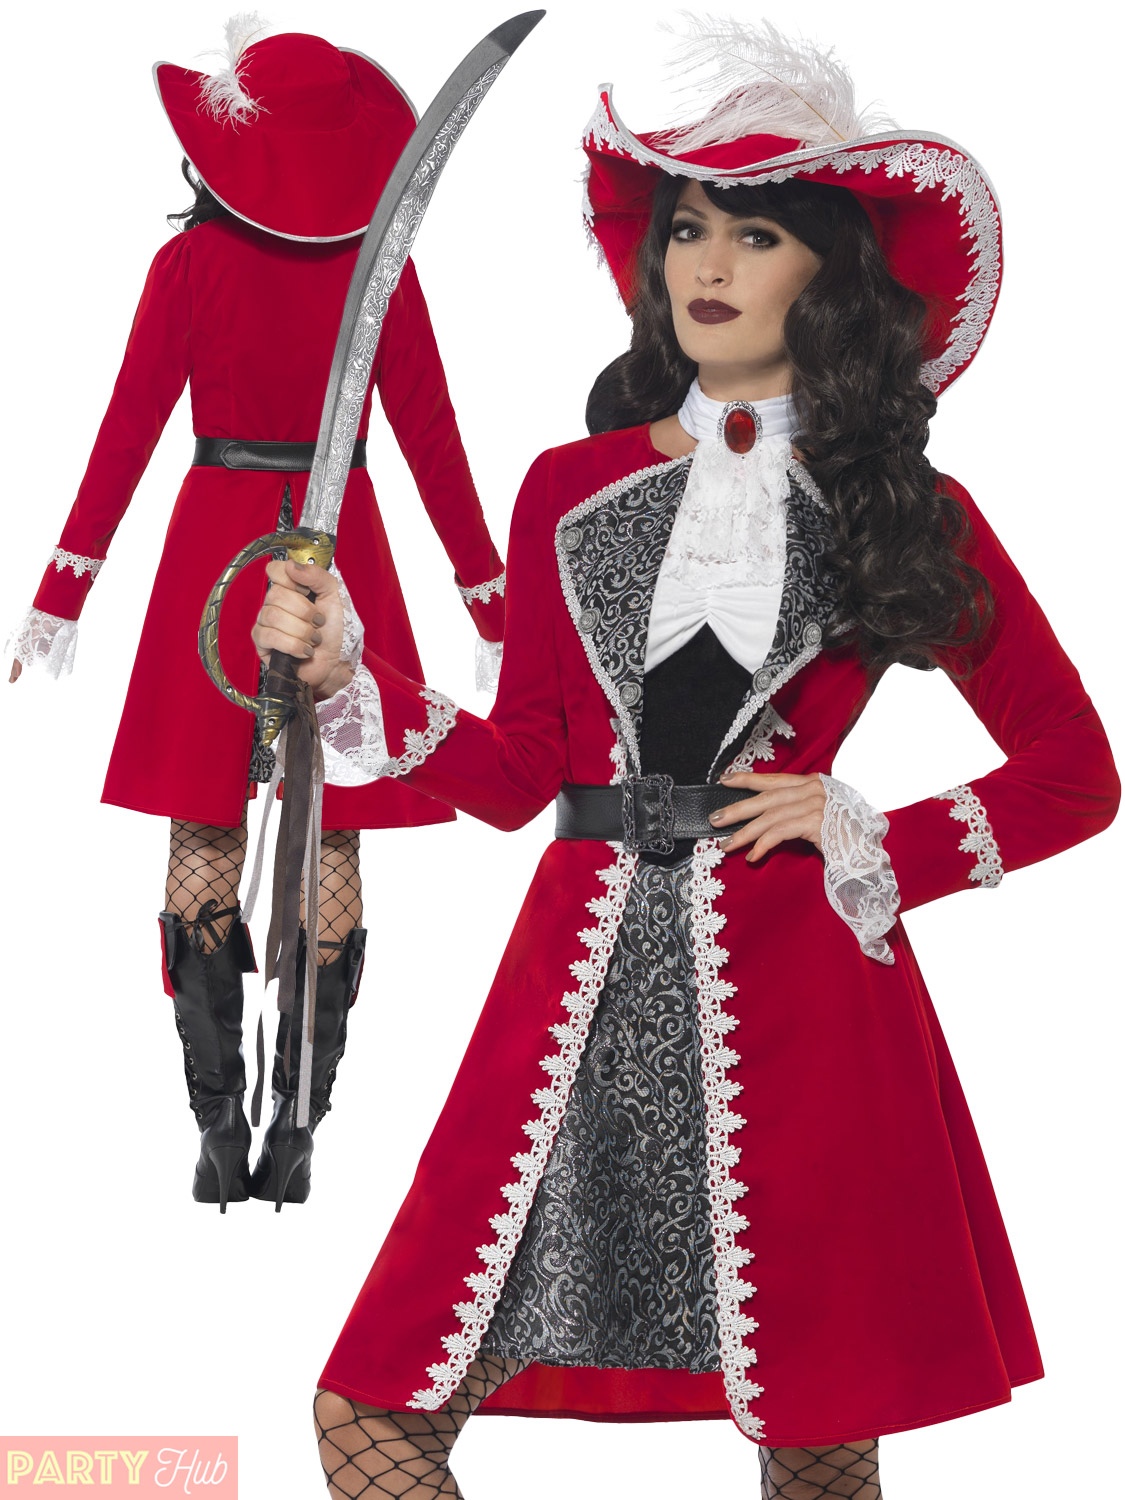 5b798a7a9 Details about Adults Deluxe Authentic Pirate Costume Ladies Mens Captain  Hook Fancy Dress Lady